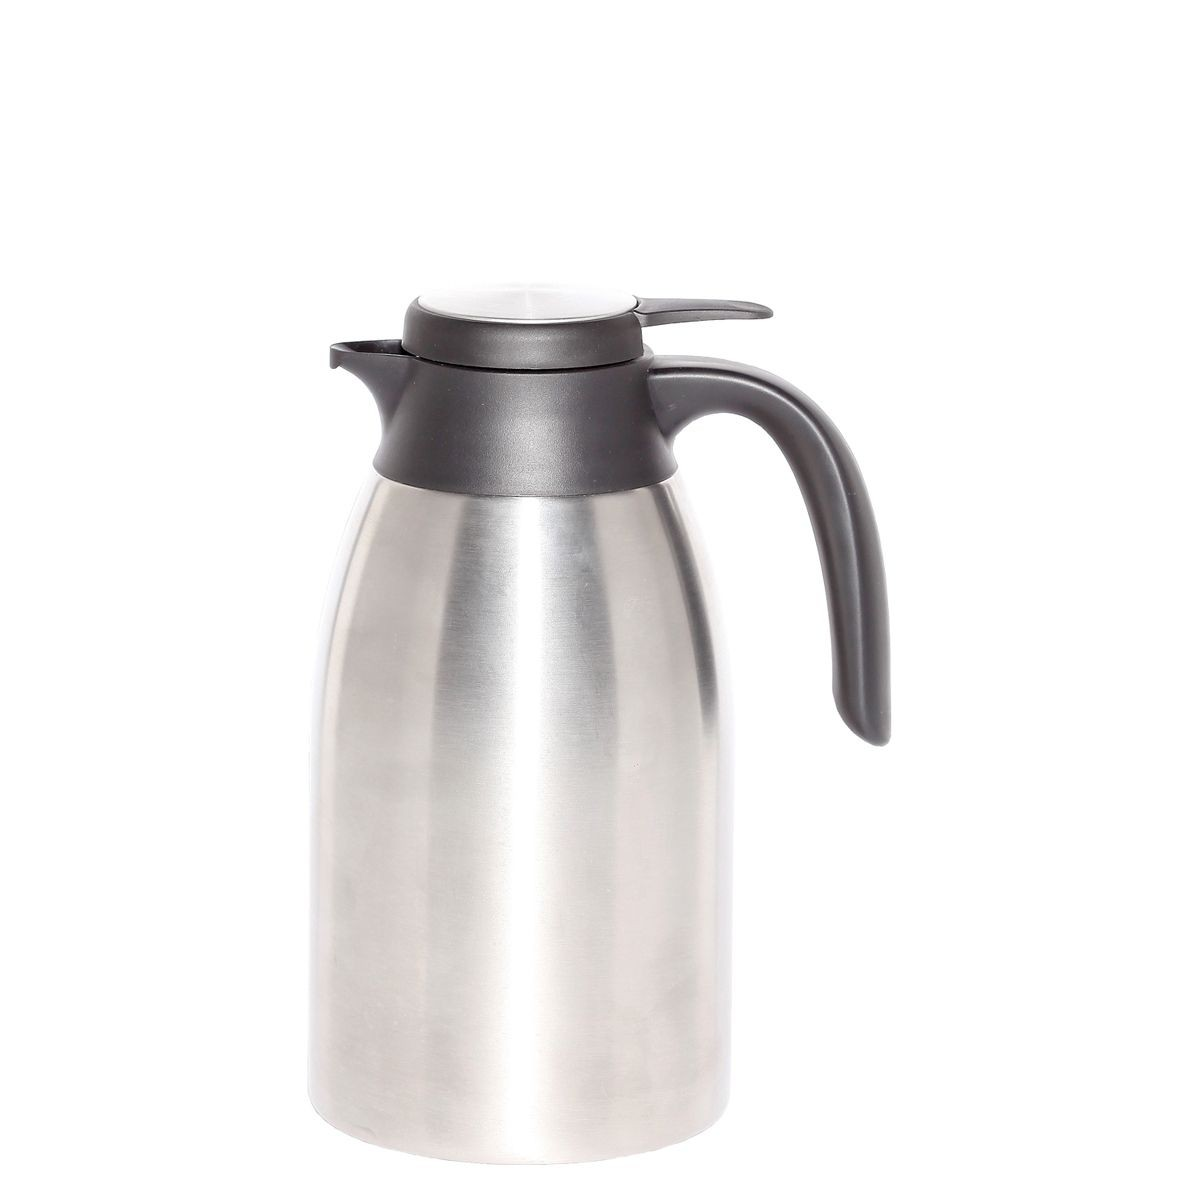 Service Ideas FCC16SS Stainless Steel Creamer, 1.6 Liter